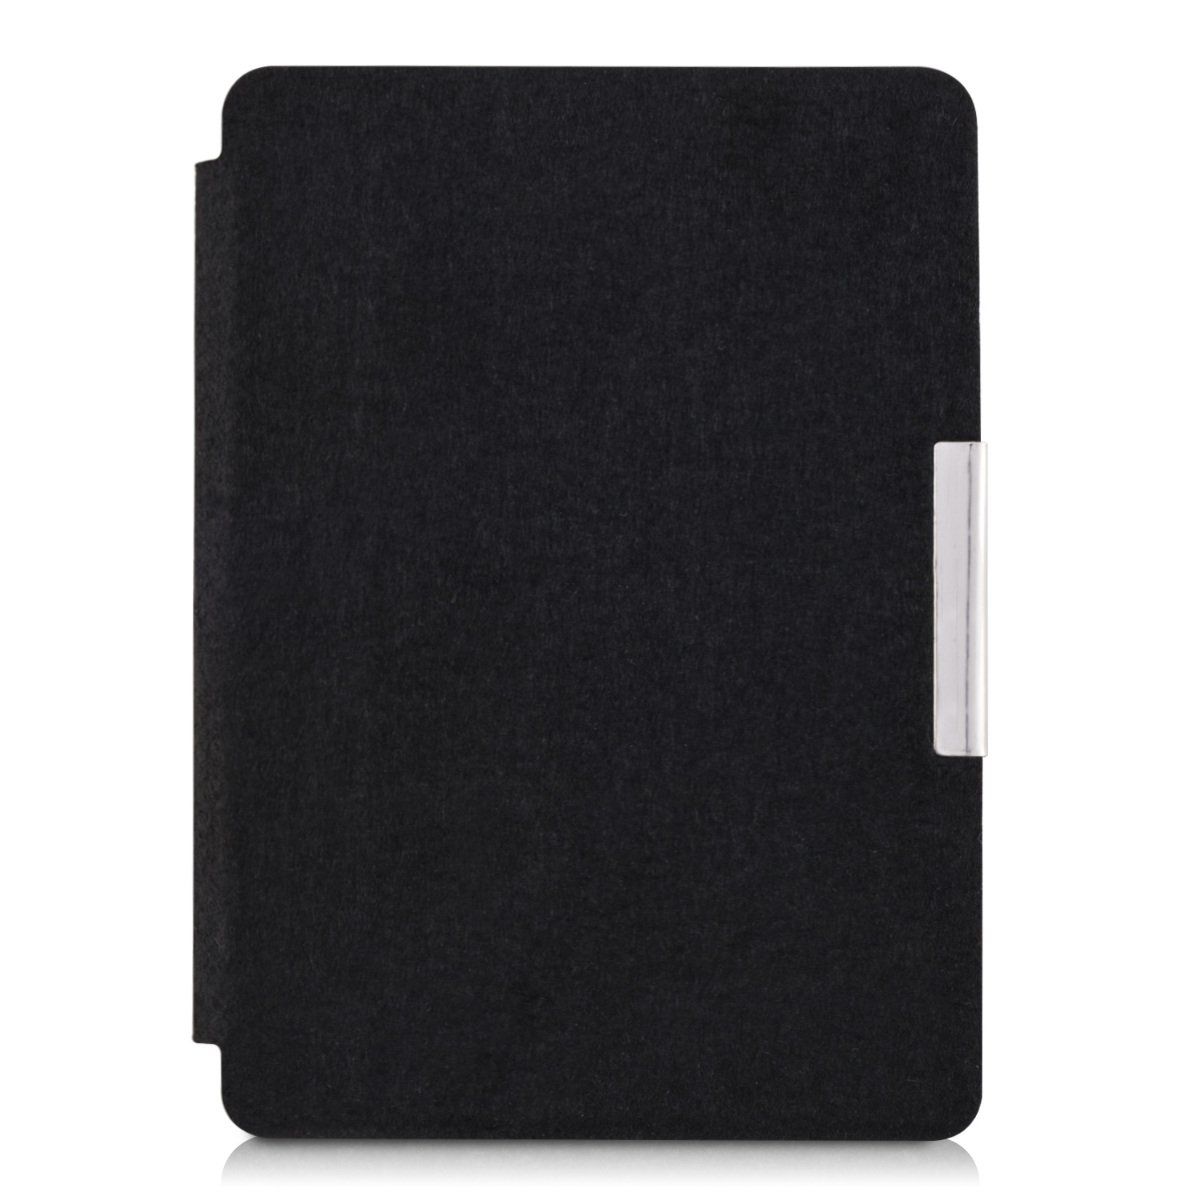 kwmobile Case for Amazon Kindle Paperwhite - Book Style Felt Fabric Protective e-Reader Cover Folio Case - black by kwmobile (Image #3)